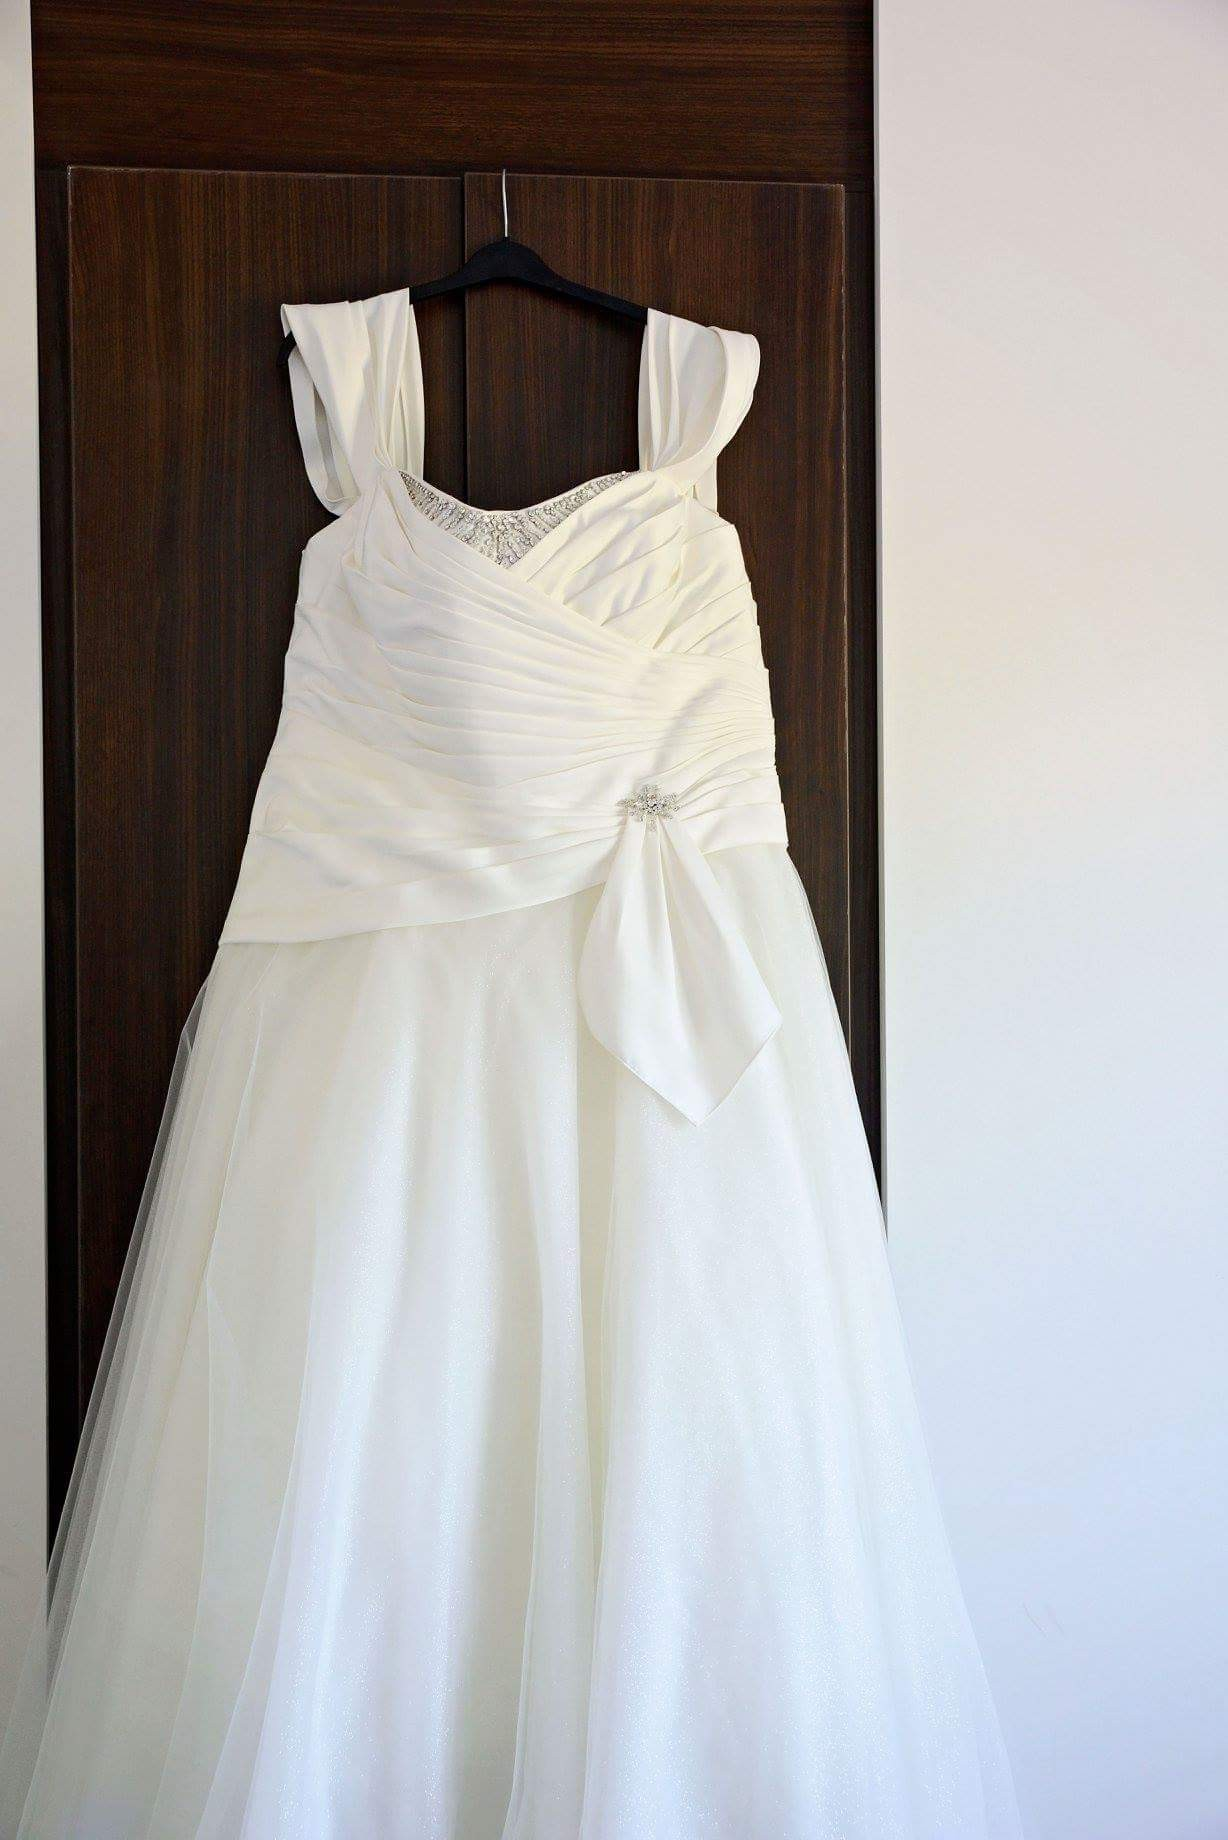 Sonsie second hand wedding dress on sale 67 off for Second hand wedding dresses for sale